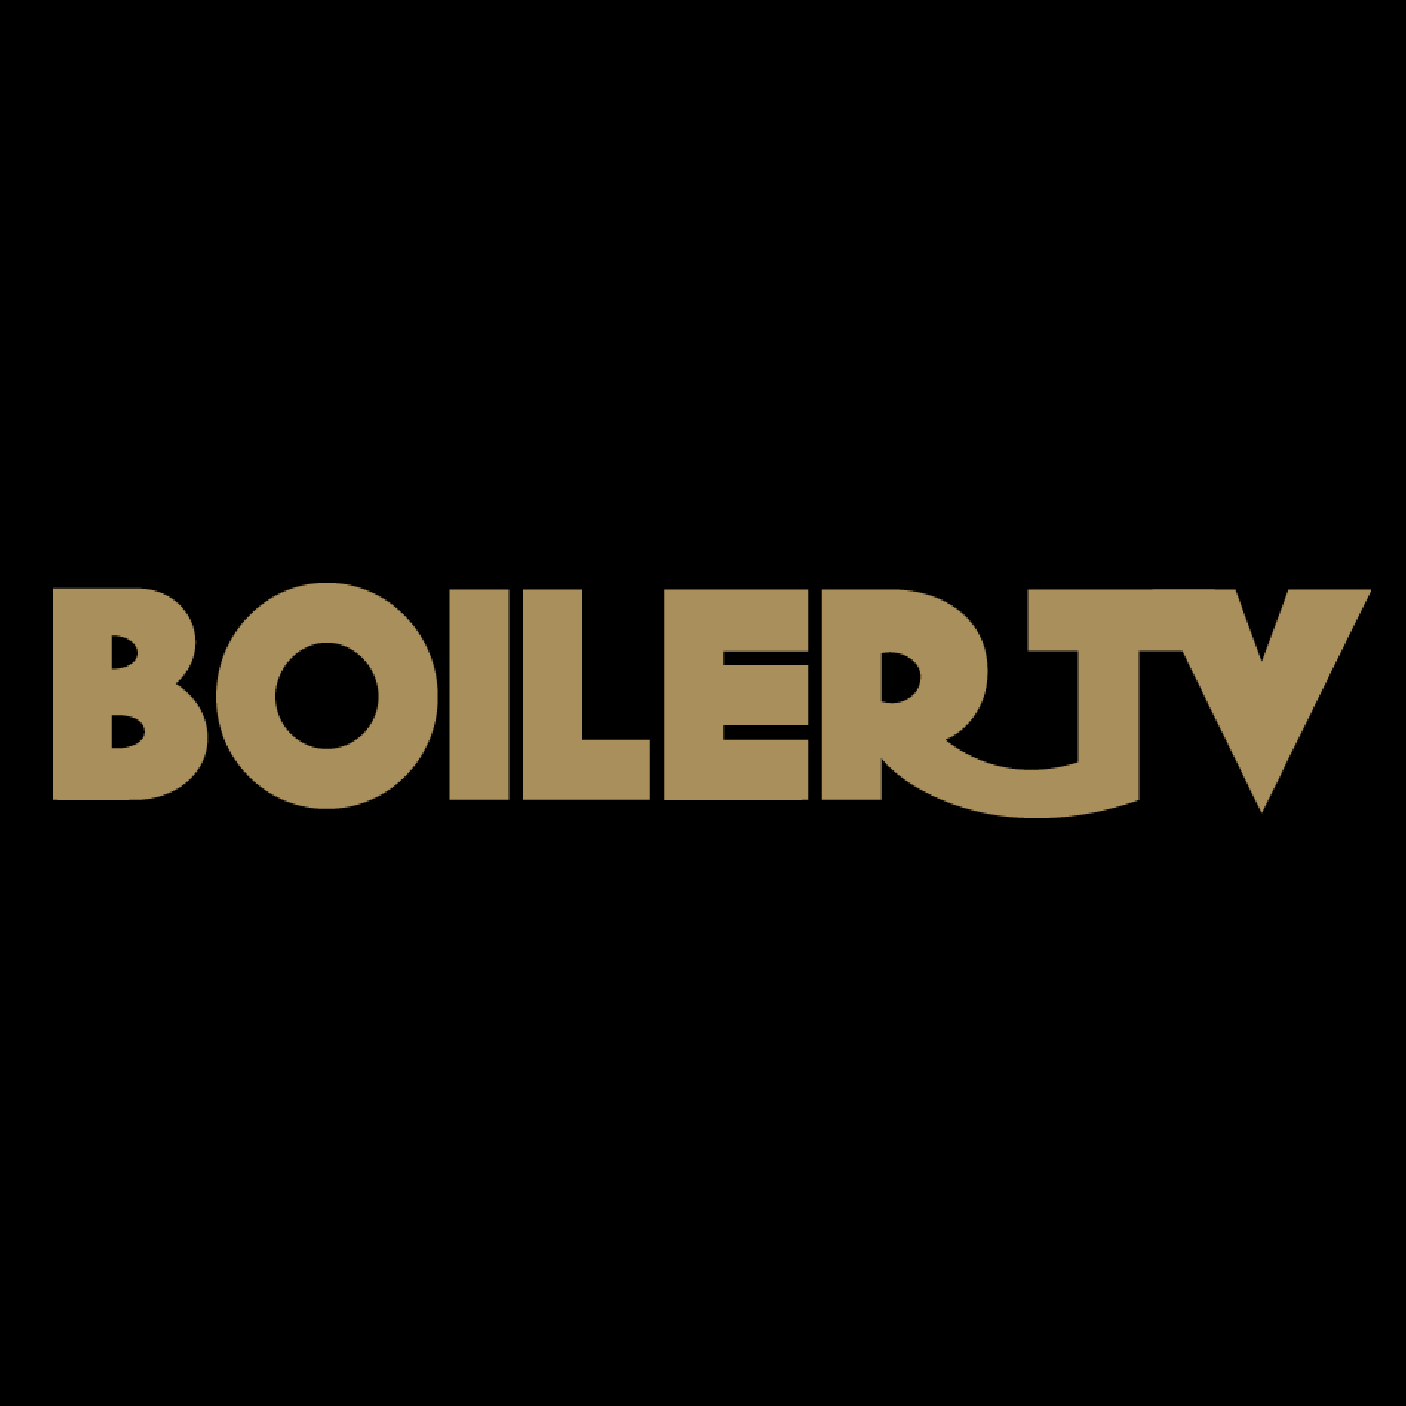 photograph relating to Printable Comcast Channel Guide Pdf named BoilerTV Channel Checklist : Purdue Faculty